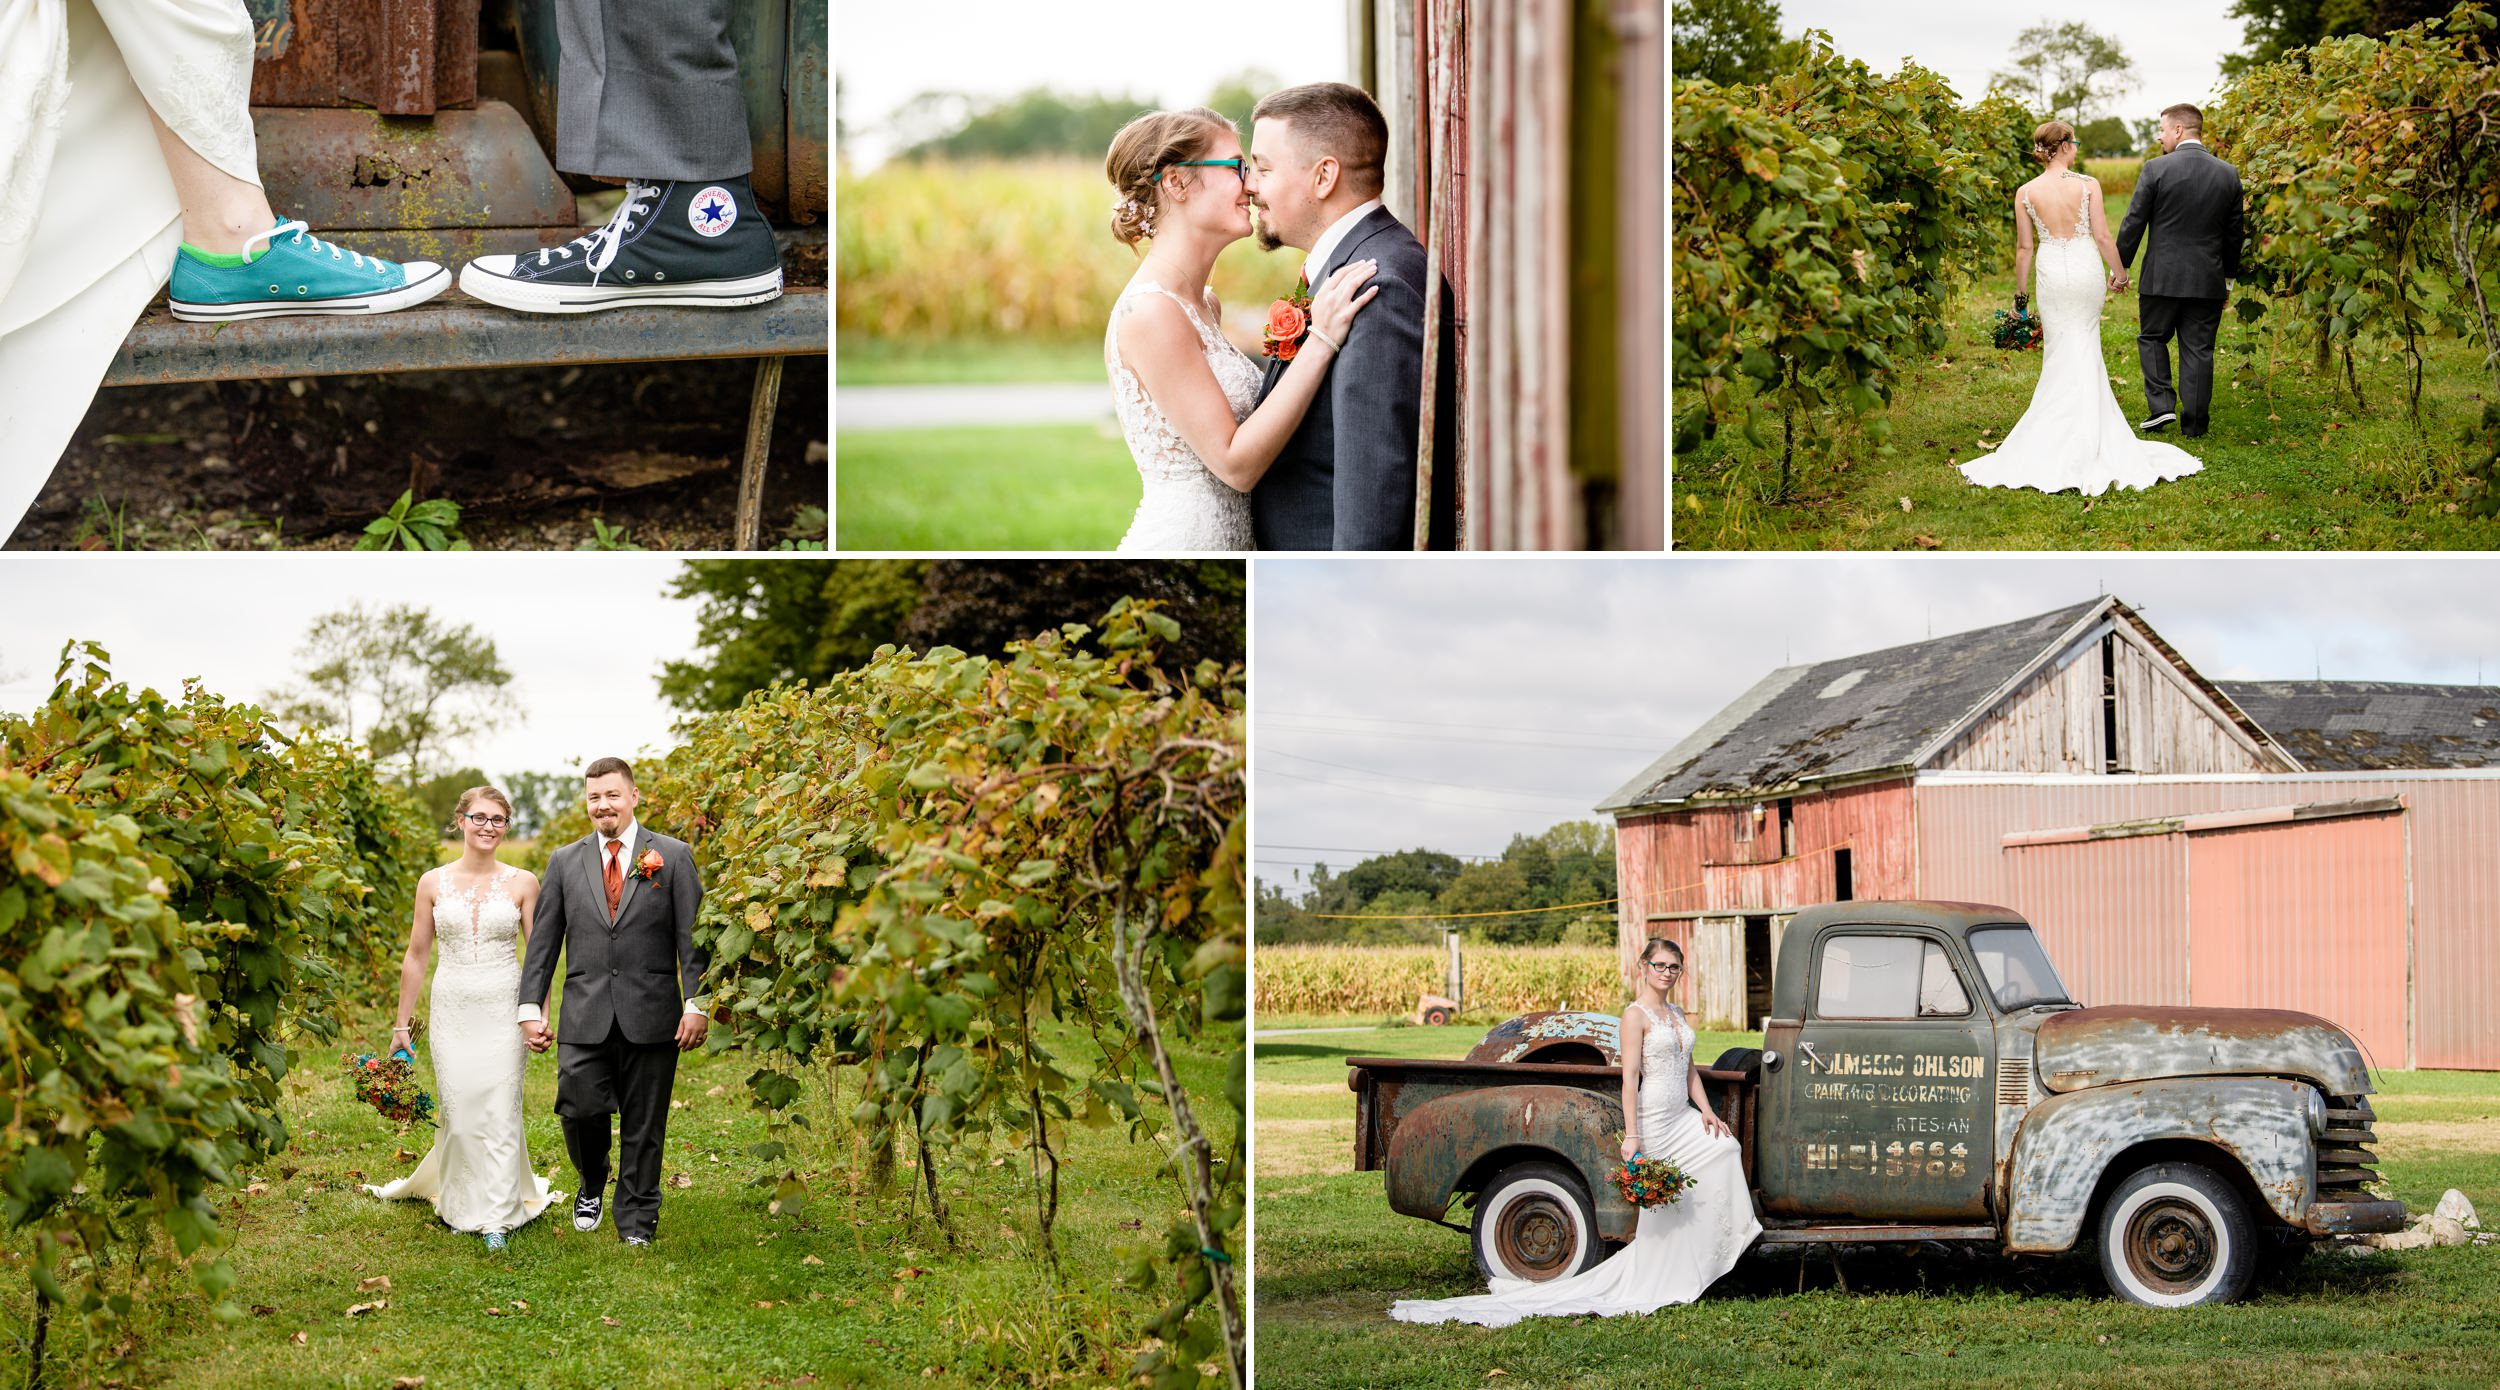 Fall wedding photos at Four Corners Winery in Valparaiso.